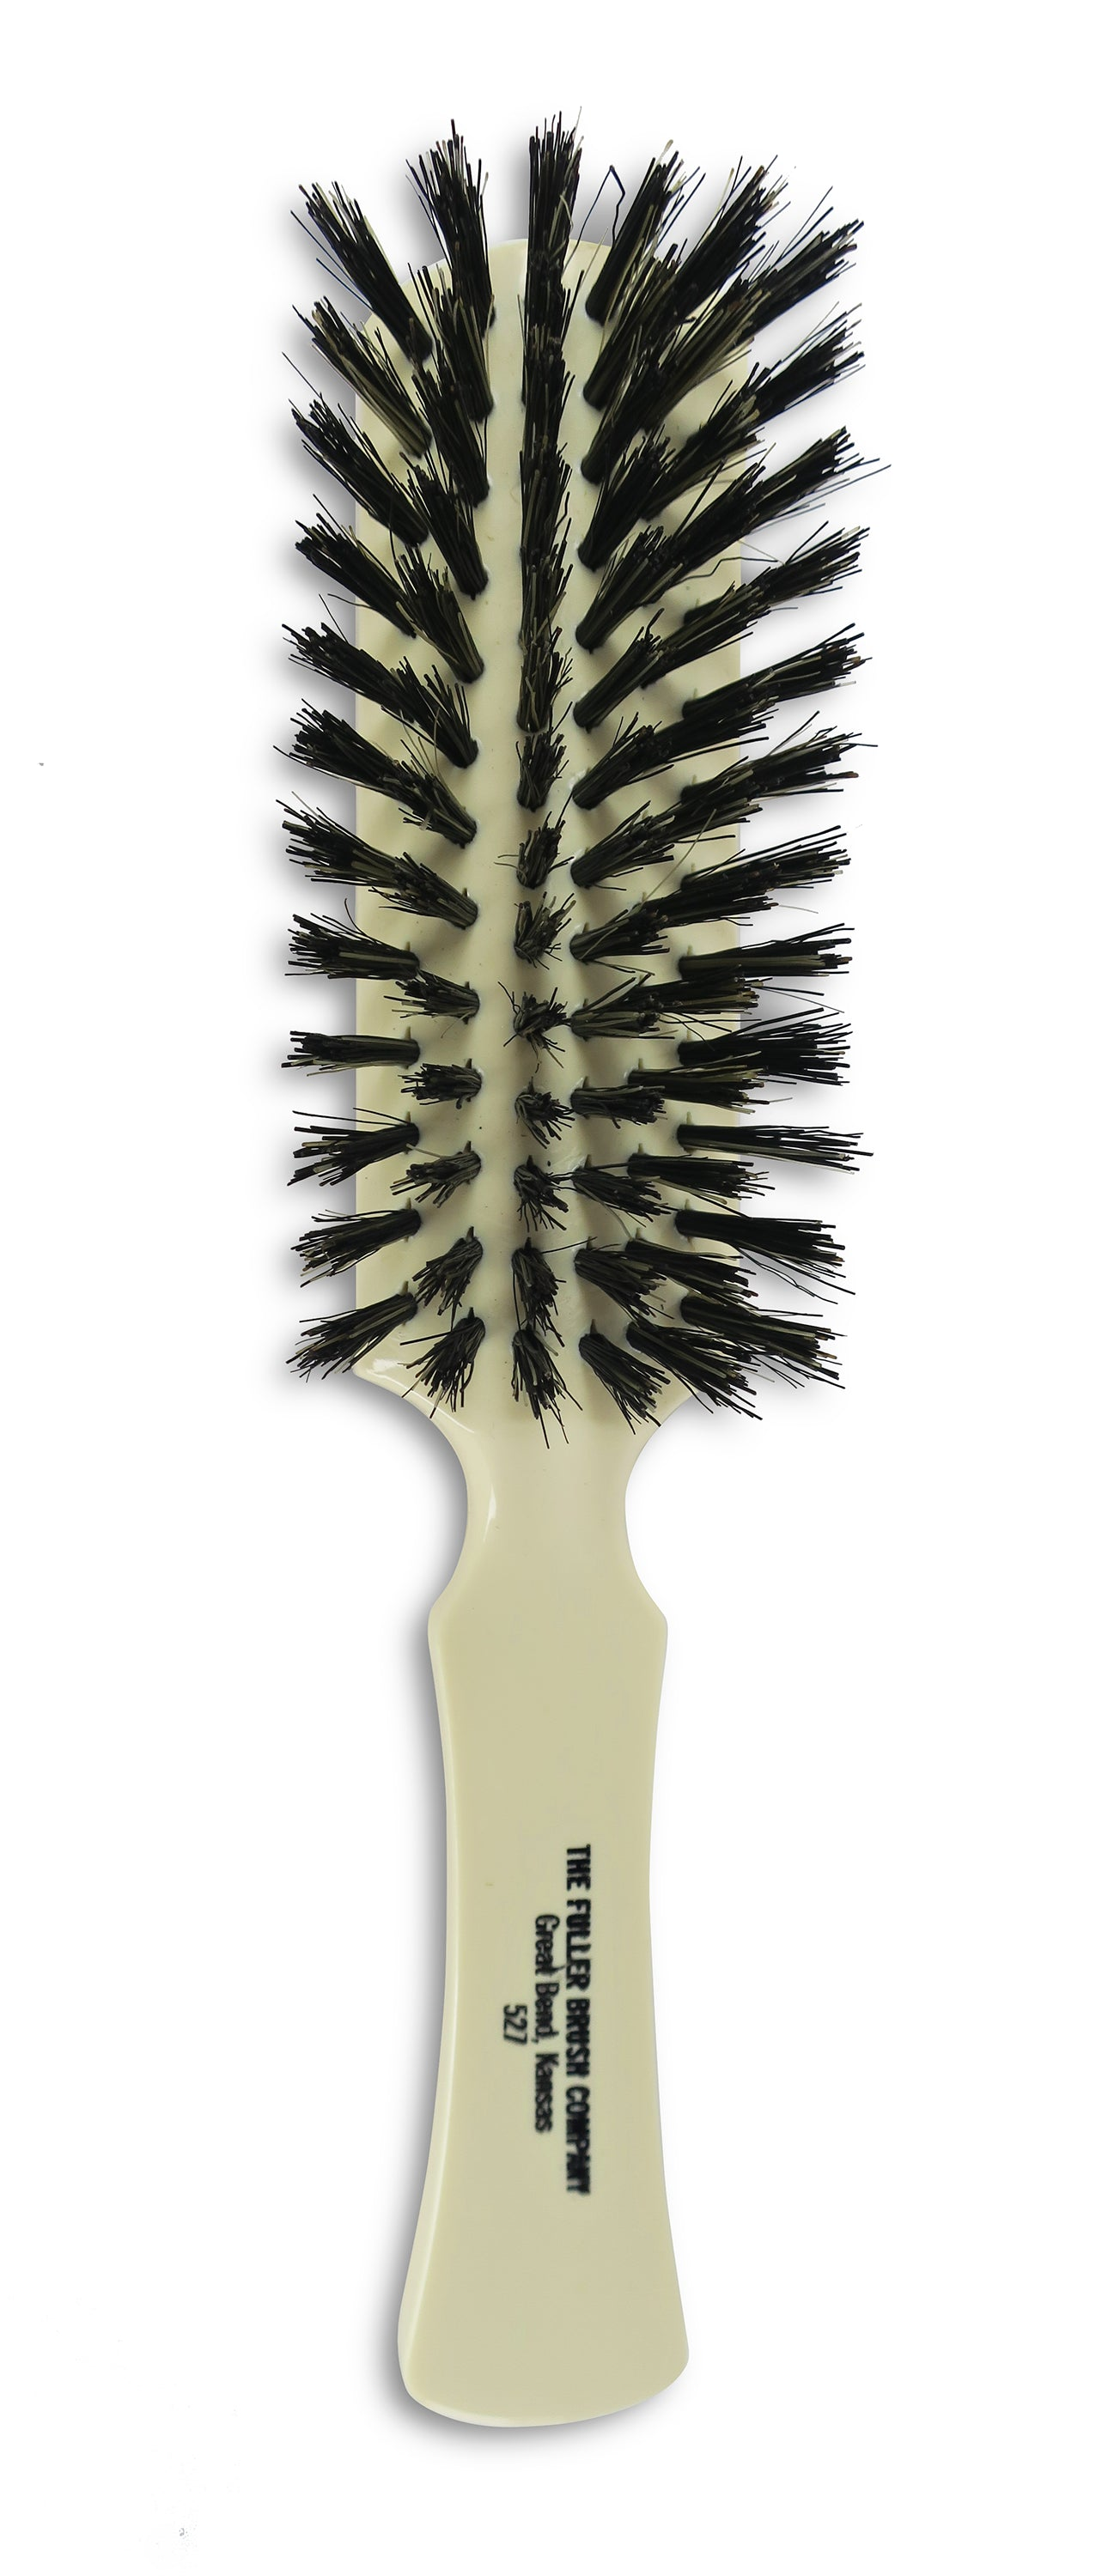 House of Fuller® Lustrebrush Professional With Natural Boars Hair Bristles for Gentle Brushing